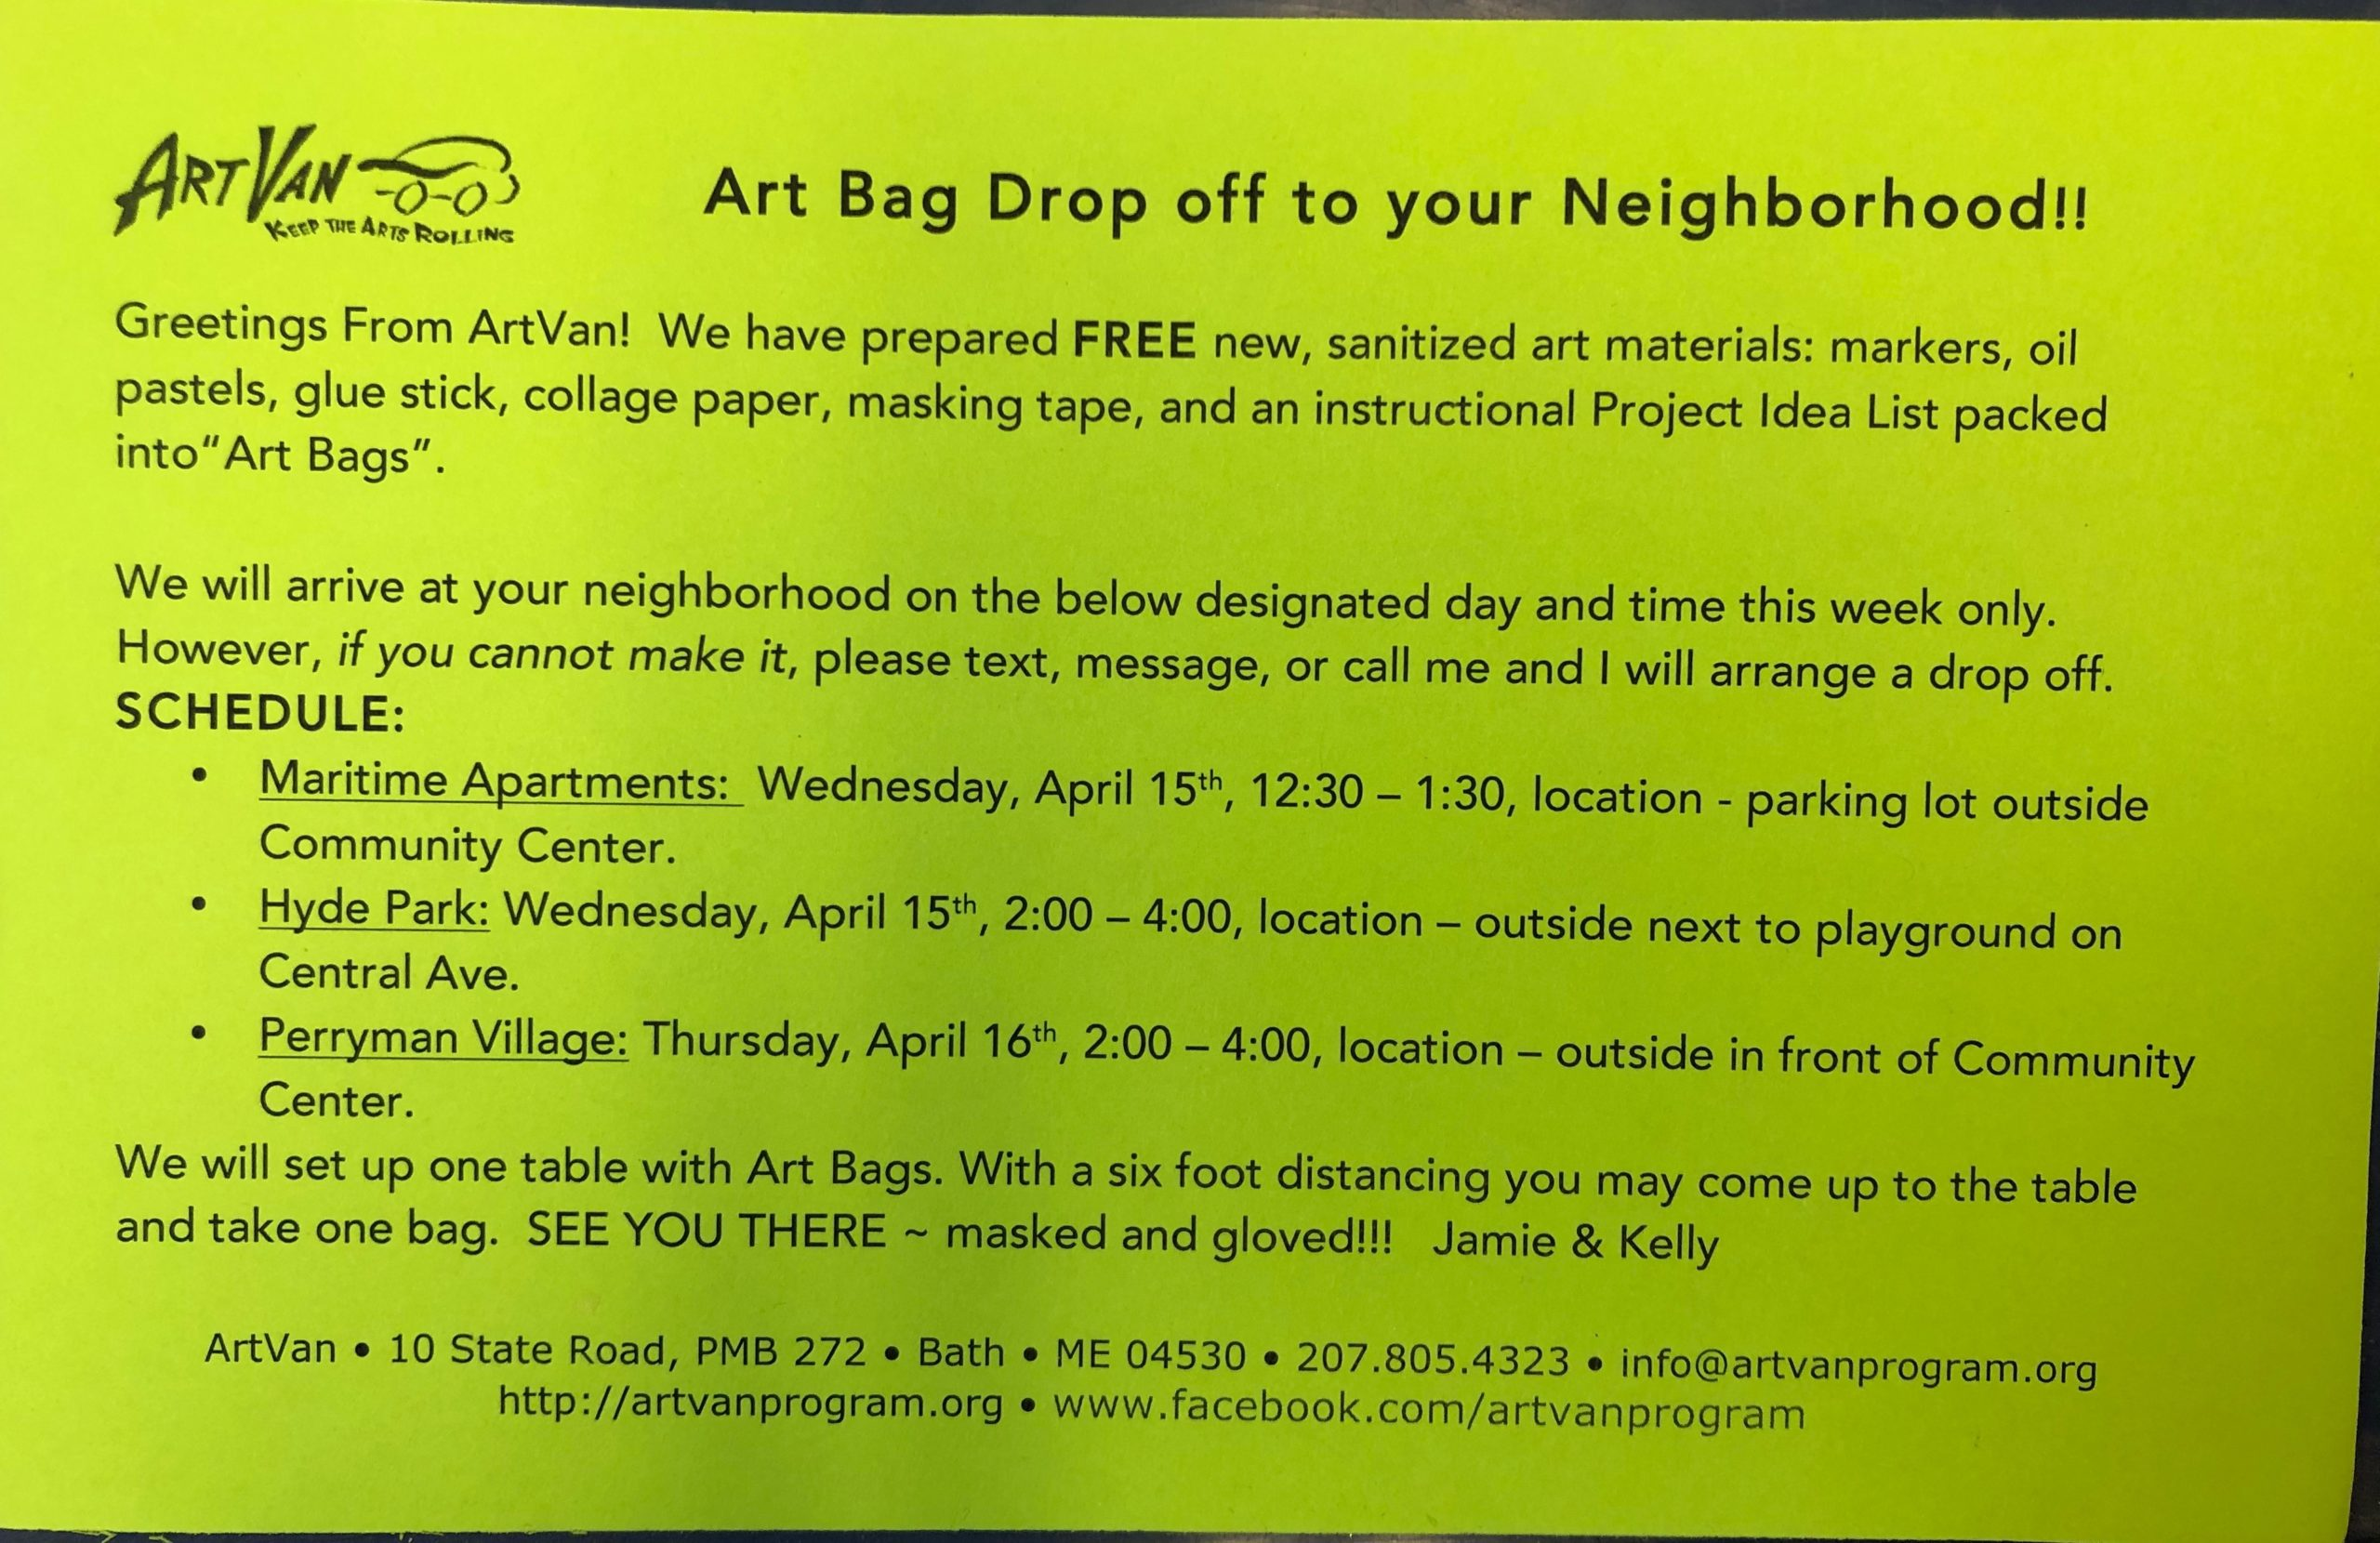 Art Bag Dropoff Info: We've prepared new Art Bags, which include brand new materials: markers, oil pastels, glue stick, collage paper, masking tape, and a Project Idea List.  All scheduled dropoffs have already occurred, but if you'd still like one please contact us and we can still drop them off!